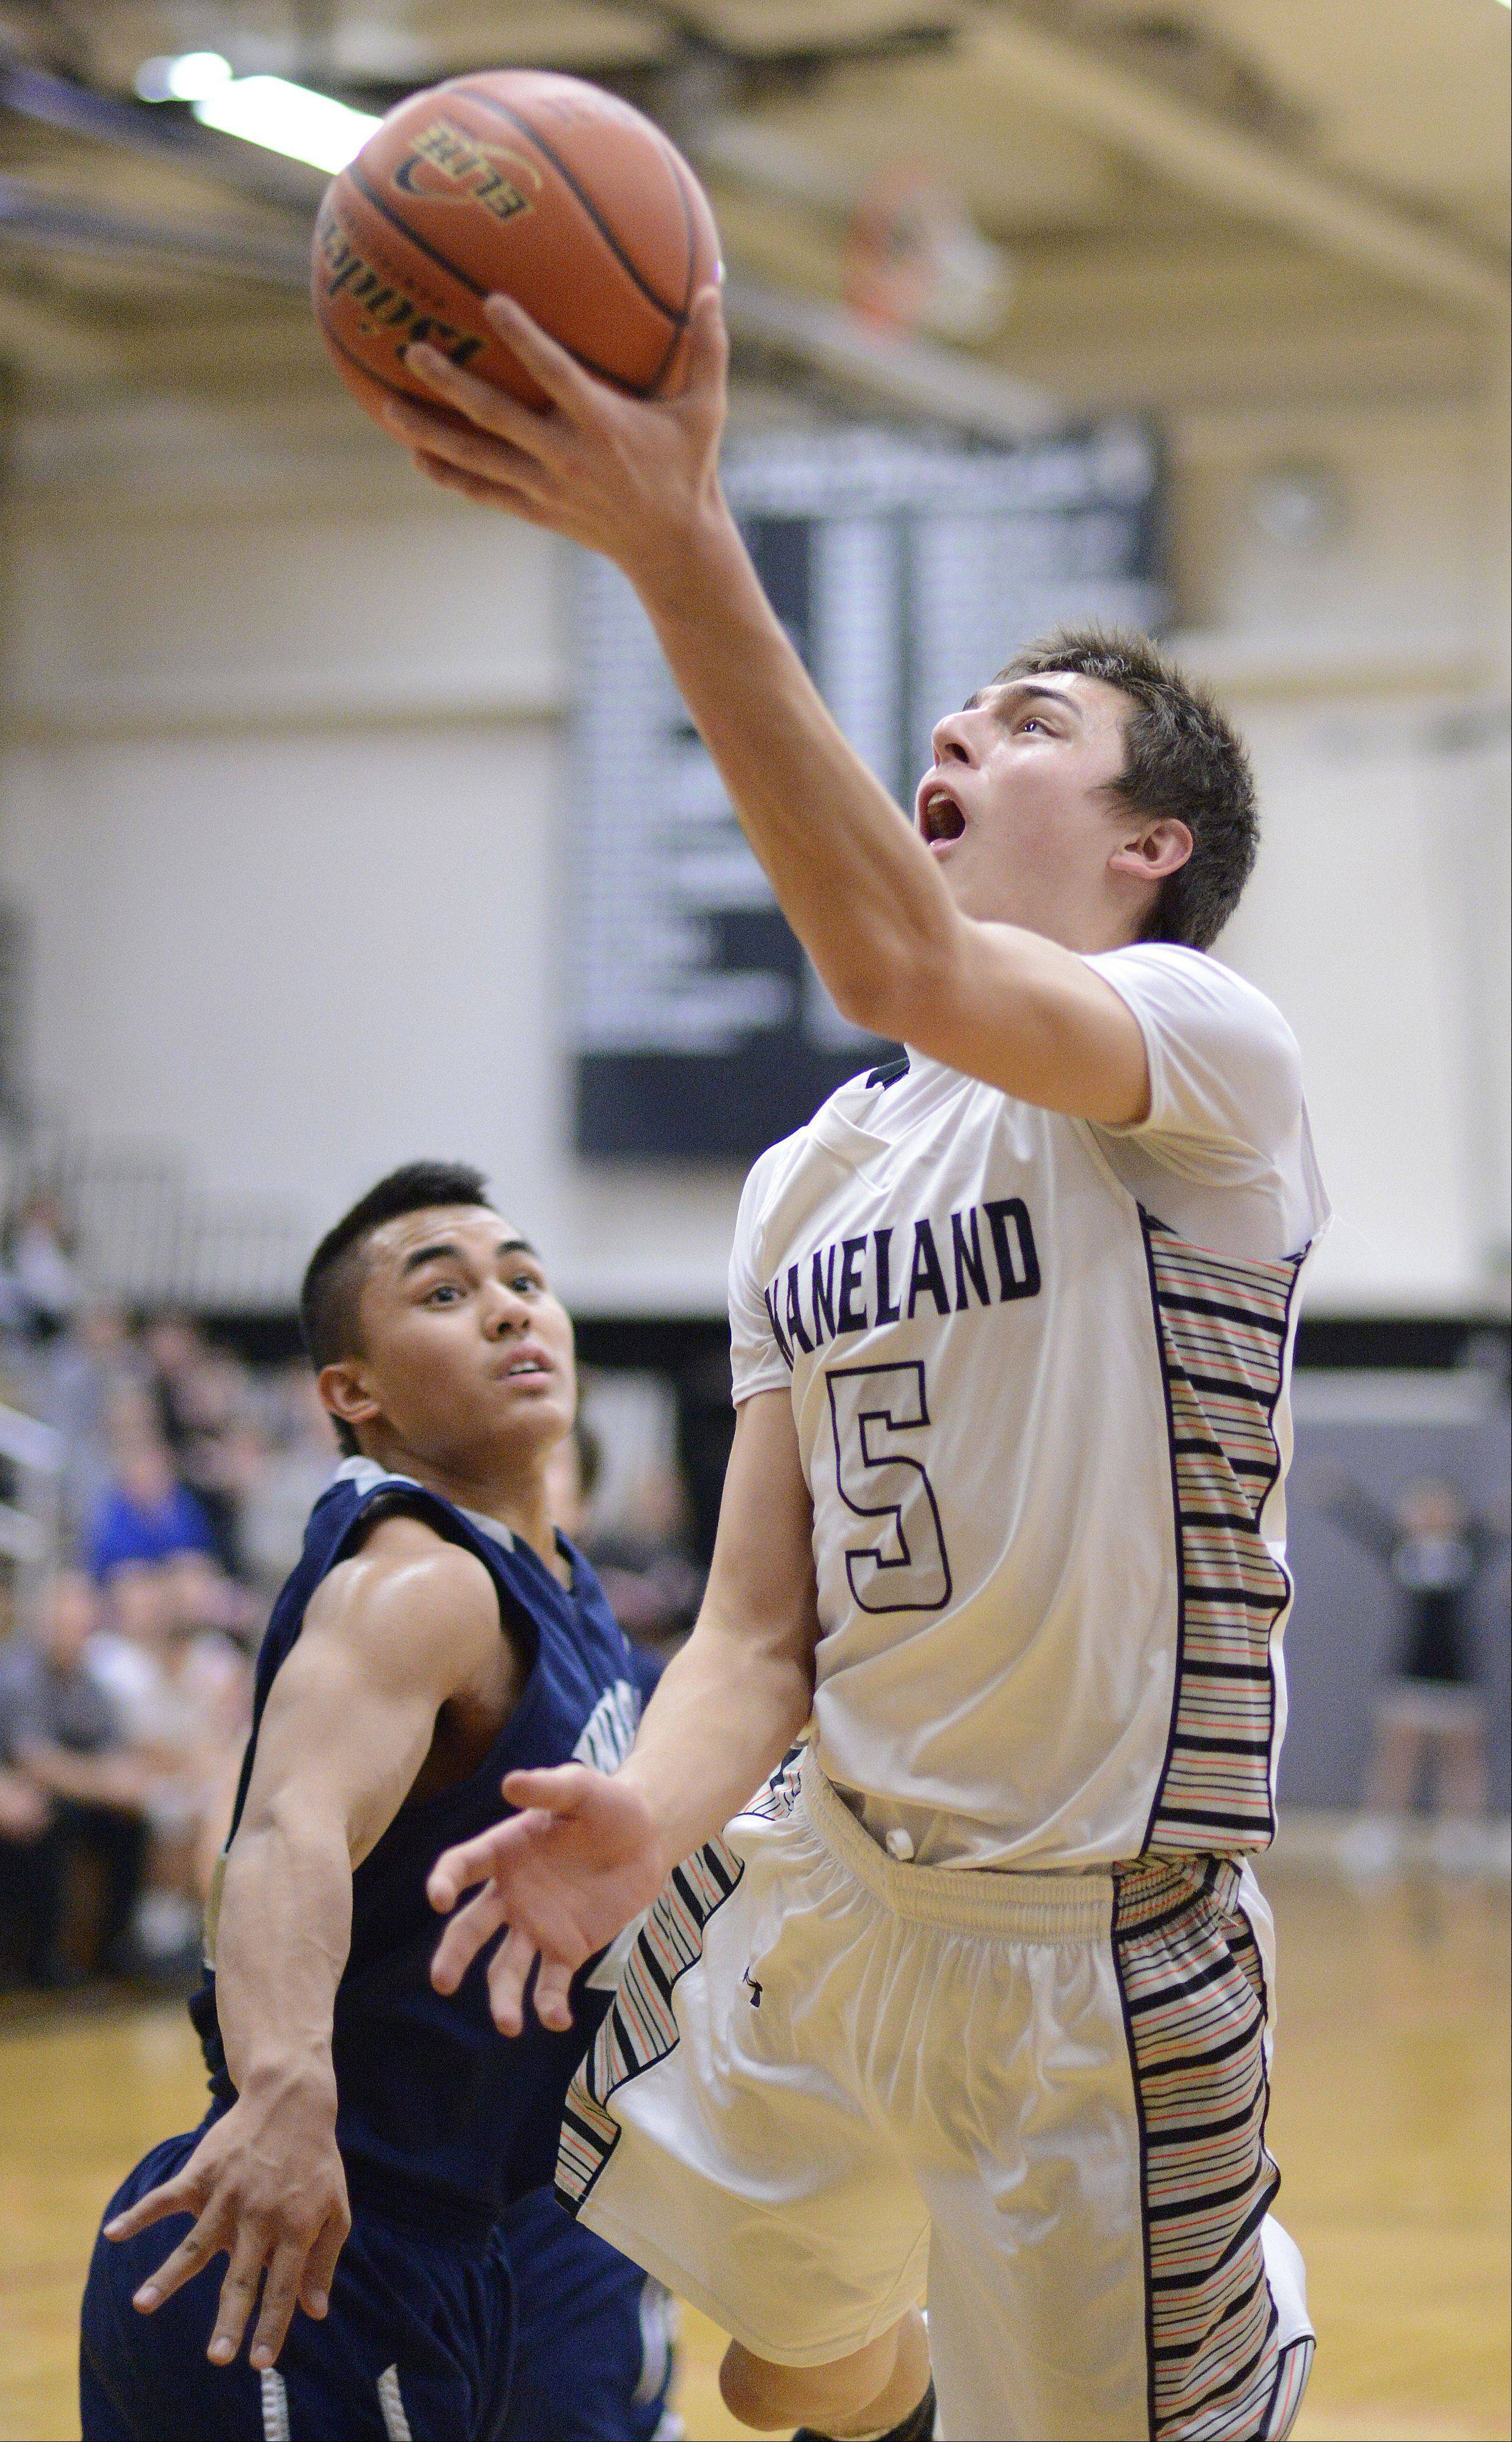 A block by West Chicago's Marco Lomibao comes premature as Kaneland's John Pruett sinks a shot past him in the first quarter on Tuesday, February 5.